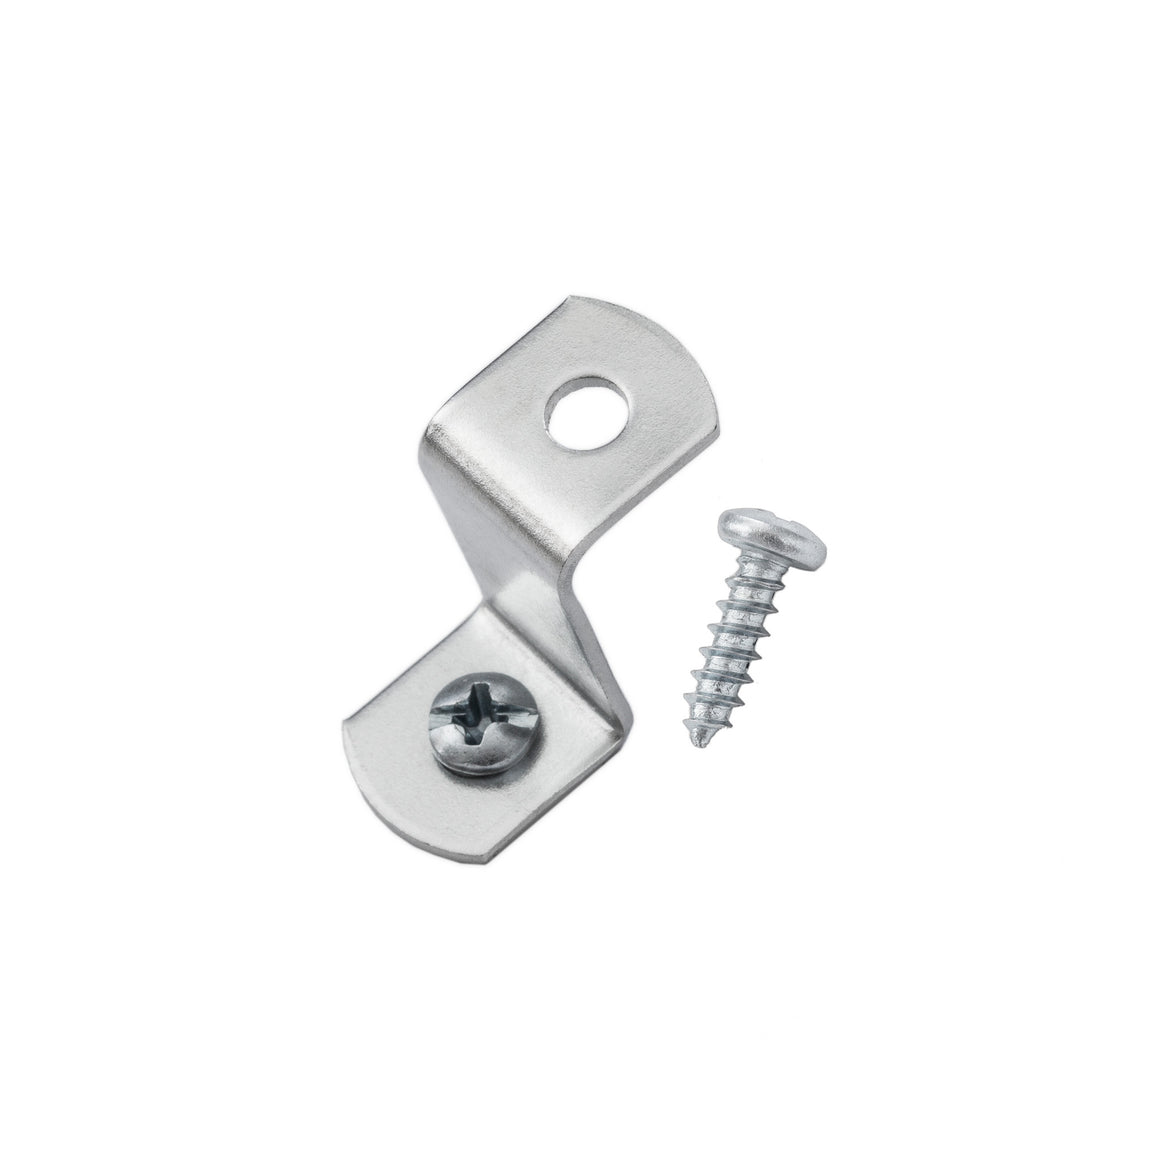 wholesale, bulk, picture frame hardware, offset clip